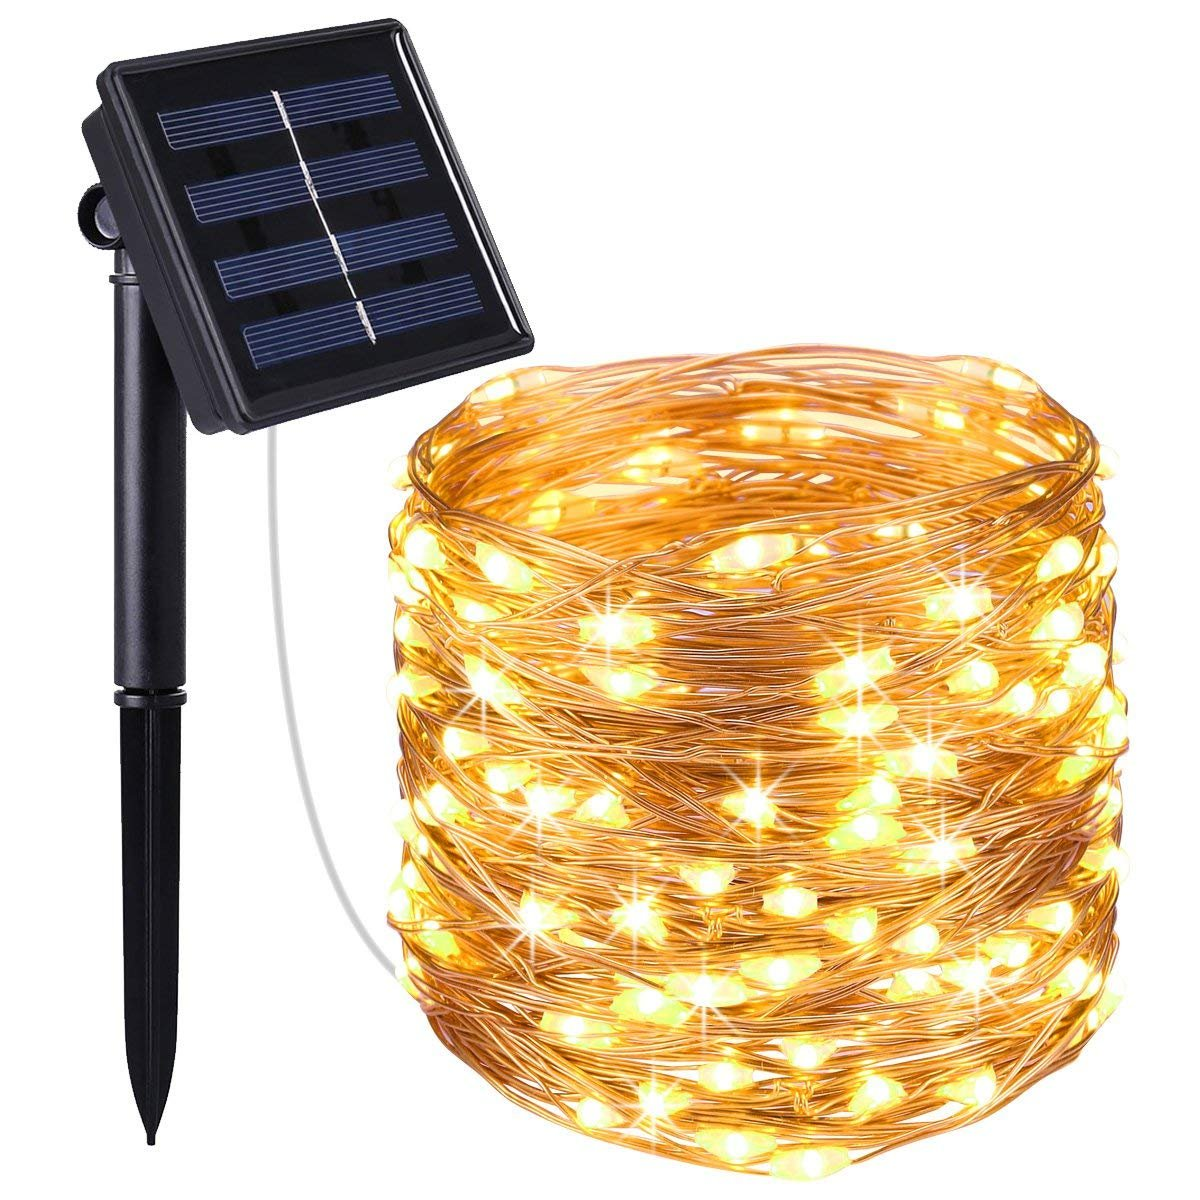 LED Solar String Lights Outdoor, 72ft 200 LED Solar Powered Fairy Light  with 8 Lighting Modes,Waterproof Outdoor Solar Lighting for Home,Garden,Decoration  (Warm White): Amazon.com.au: Lighting